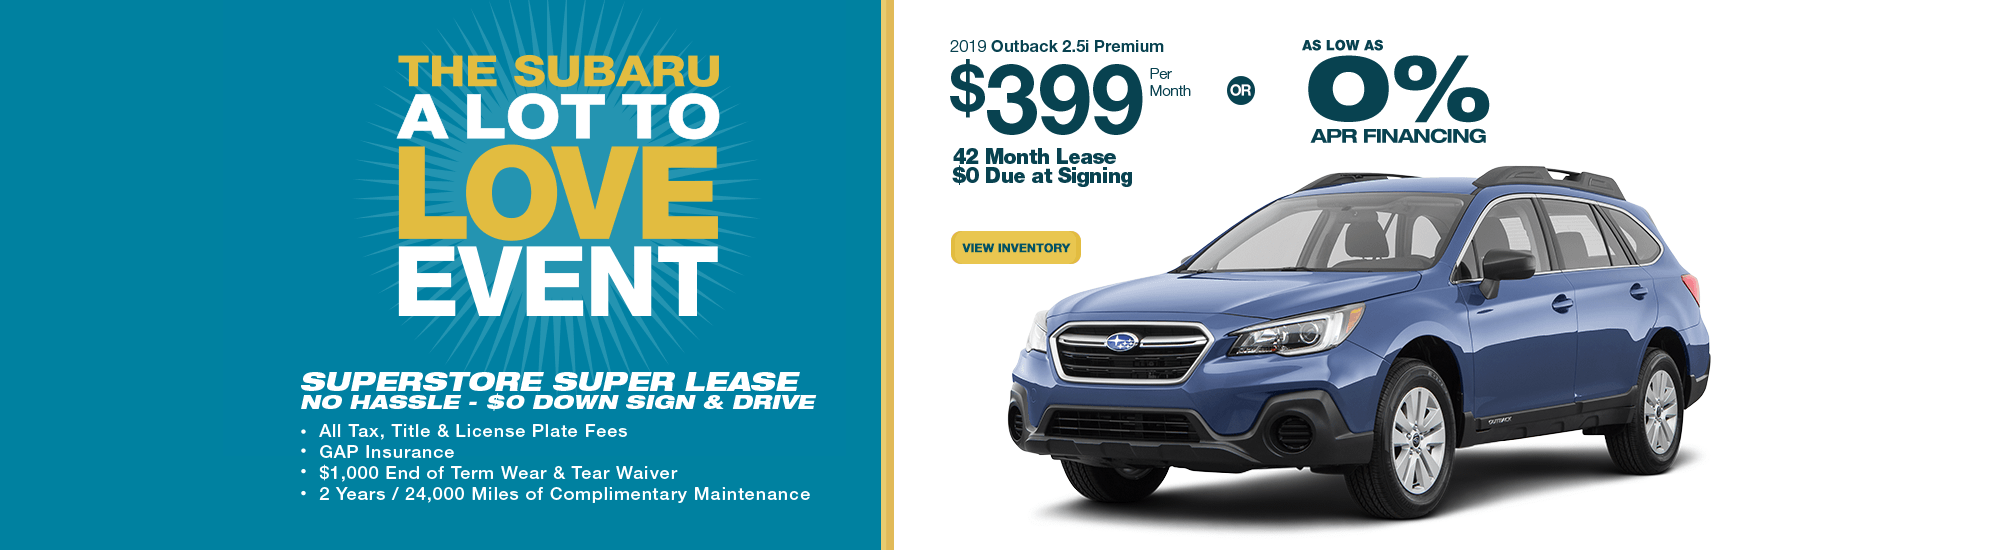 2019 Subaru Outback 2.5i Premium lease or finance special in Chandler, AZ